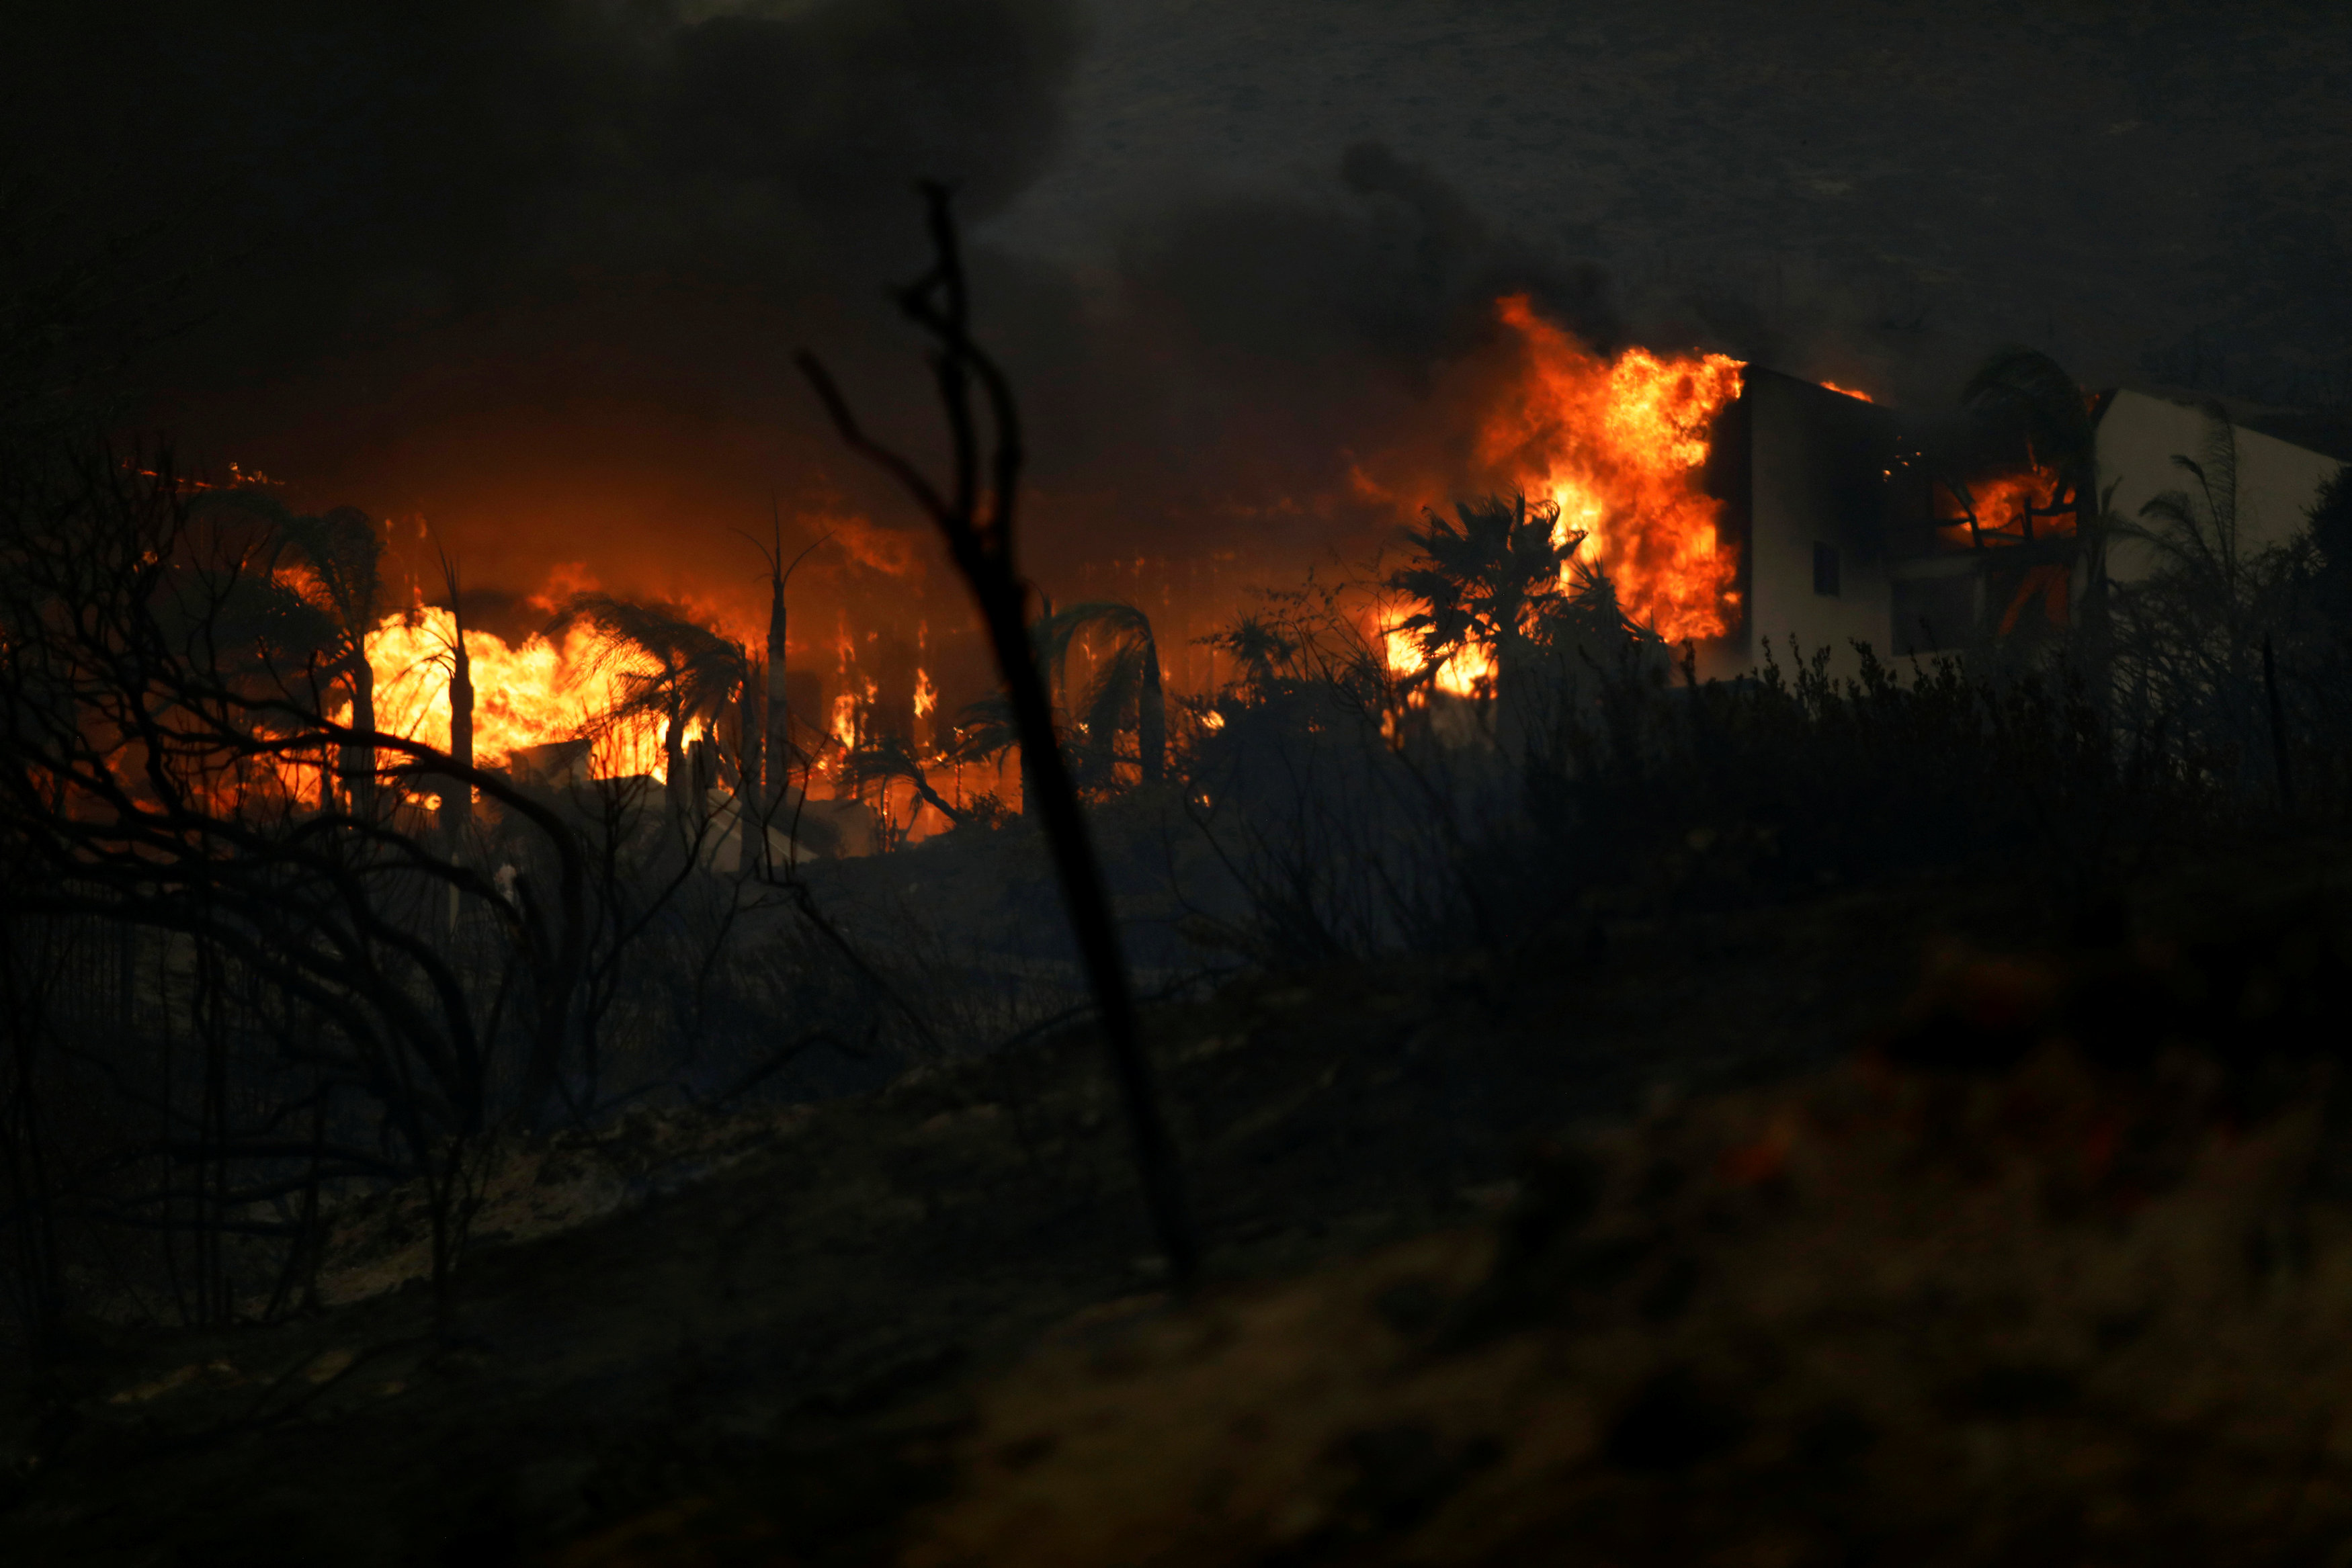 The Woolsey Fire burns in Malibu, California, US November 9, 2018. The fire destroyed dozens of structures, forced thousands of evacuations and closed a major freeway. REUTERS